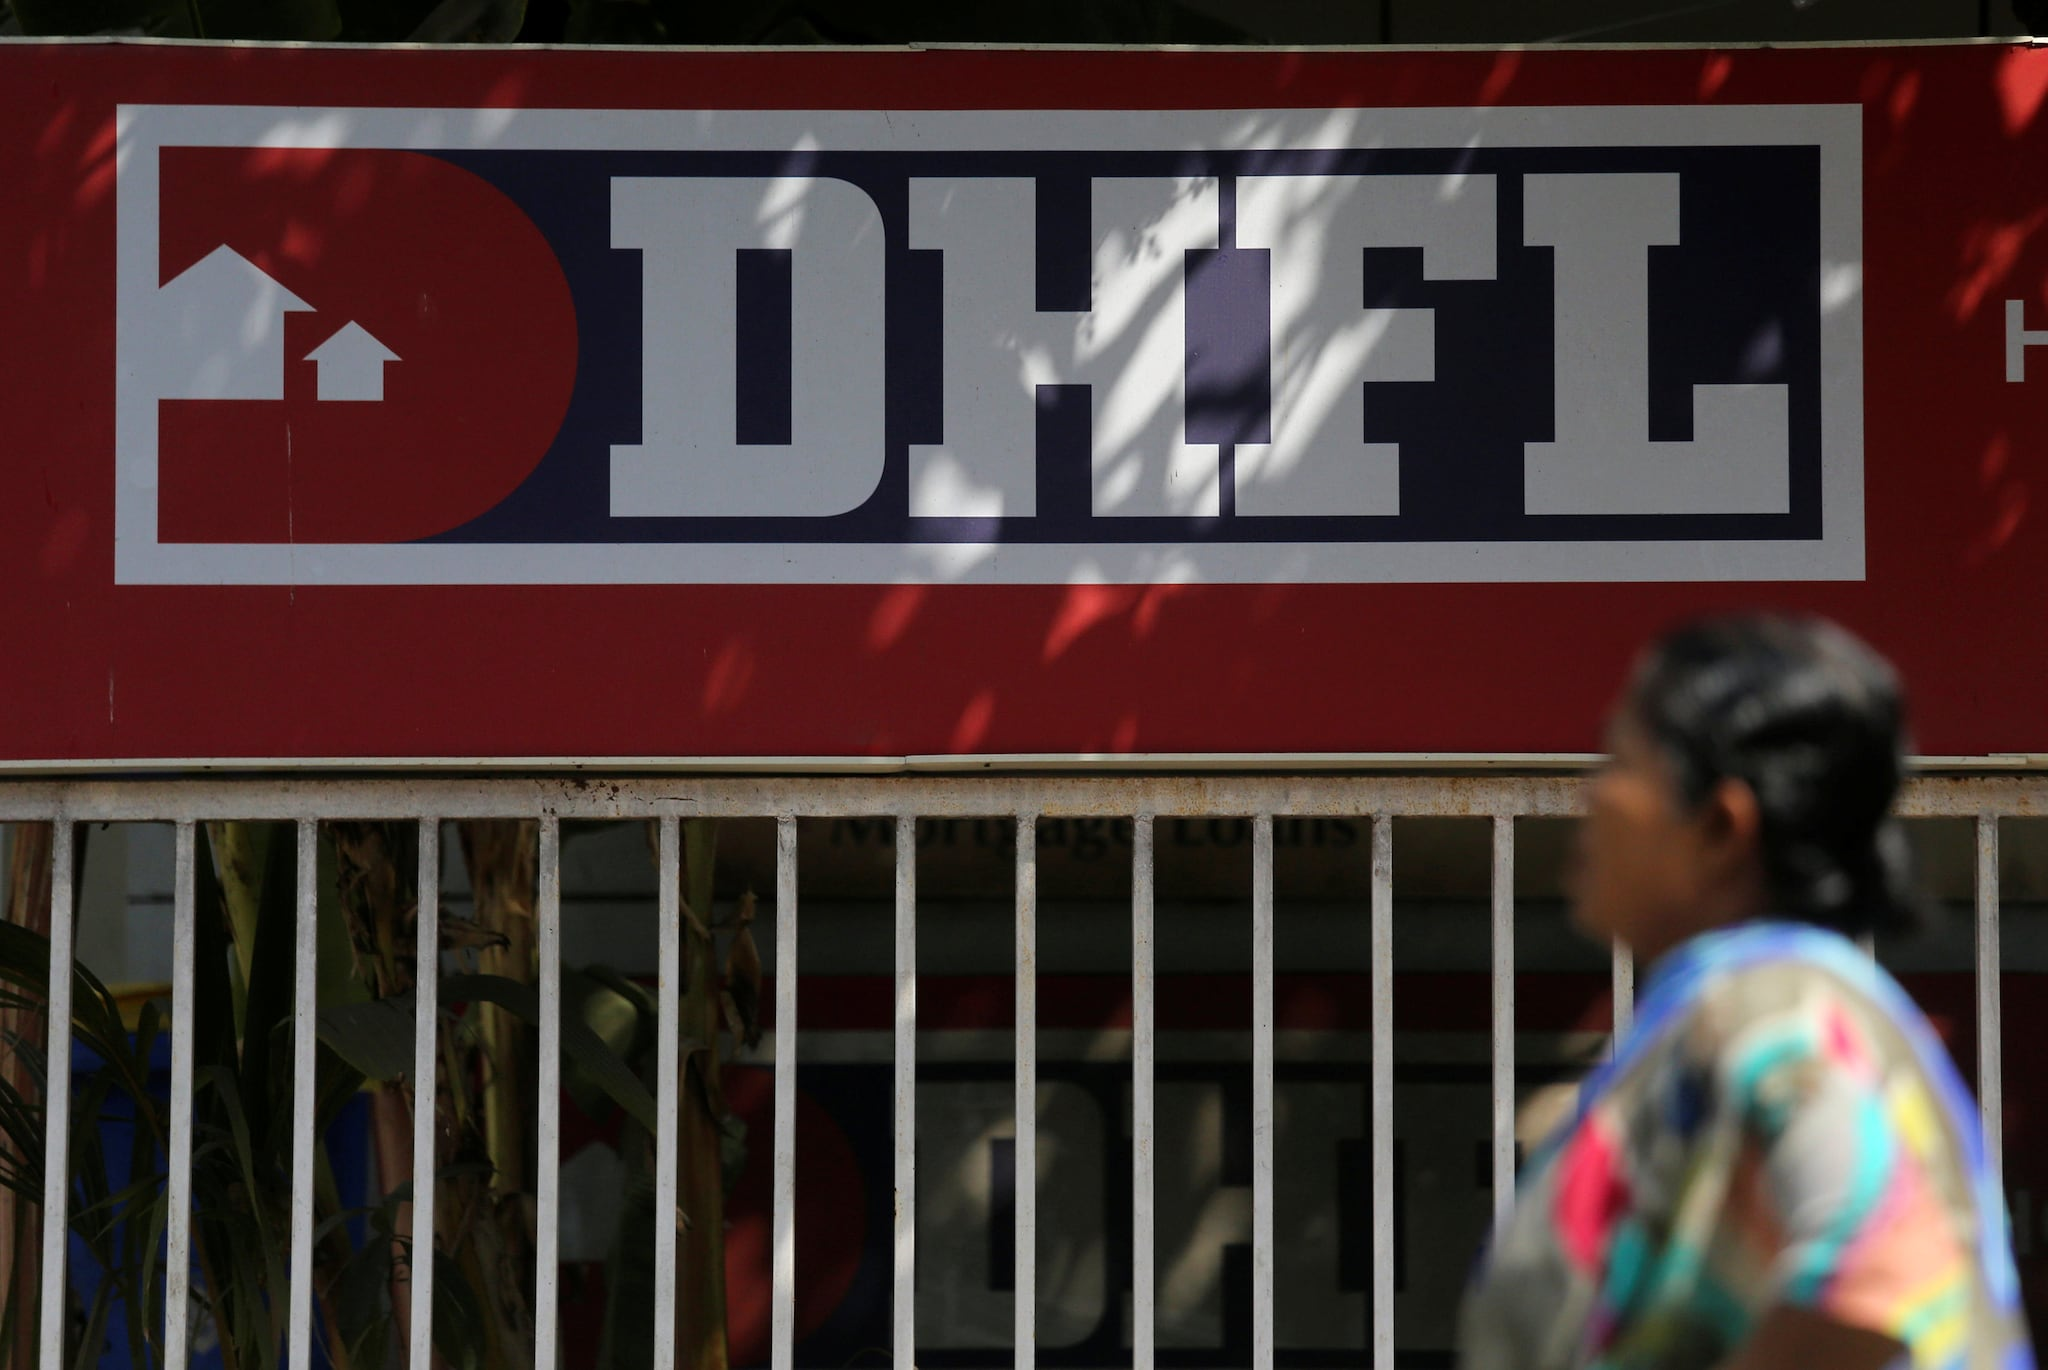 DHFL: The company on Monday said its independent director VK Chopra has resigned. The board of directors of the company has accepted his resignation with effect from March 11, the company said in a filing to the BSE. (Image: Reuters)